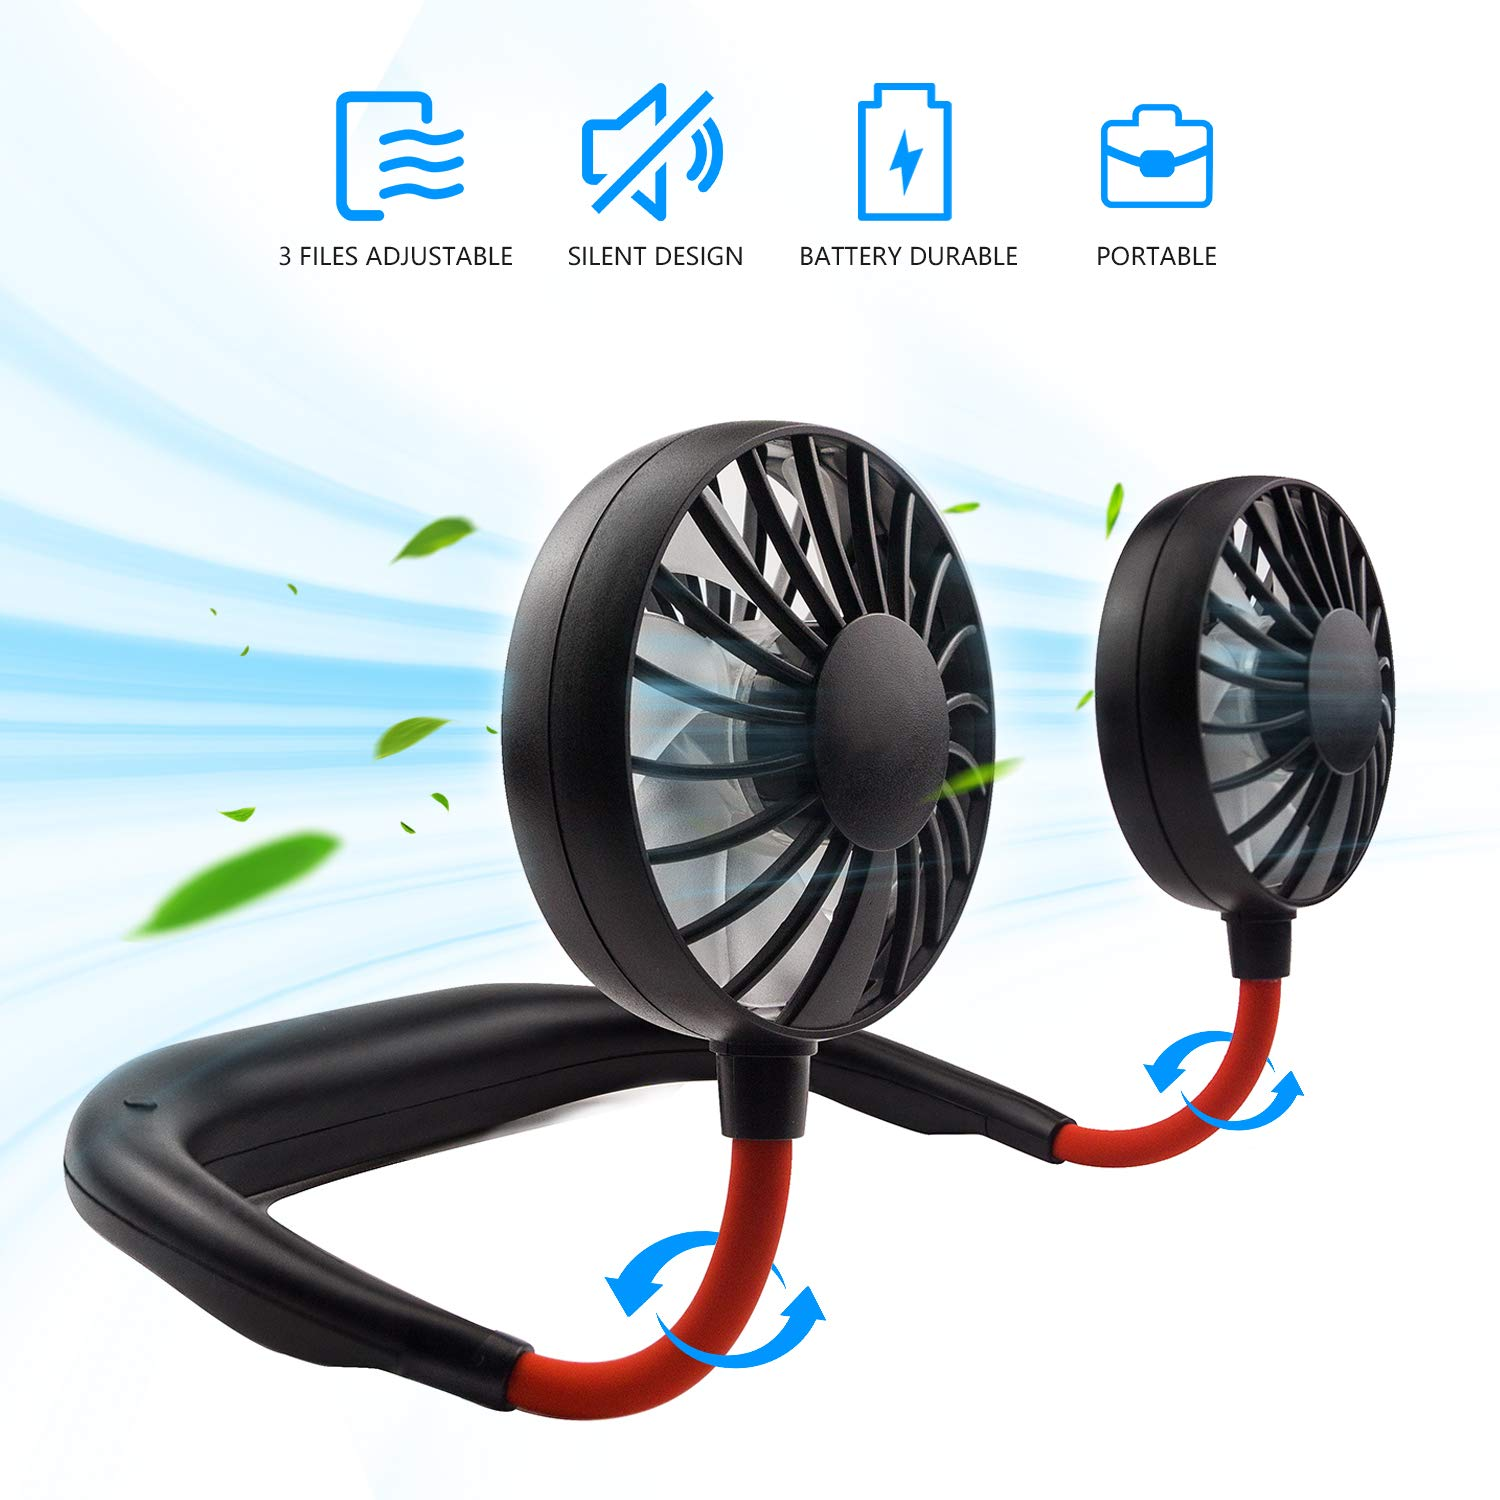 Hand-Free Personal Fan, Mini Portable USB Rechargeable Fan, with 3 Speed Adjustable, 360 Degrees Free Rotation Perfect for Traveling, Sports and Office Room, Headphone Design, Neckband Wearable by JUANANIUG